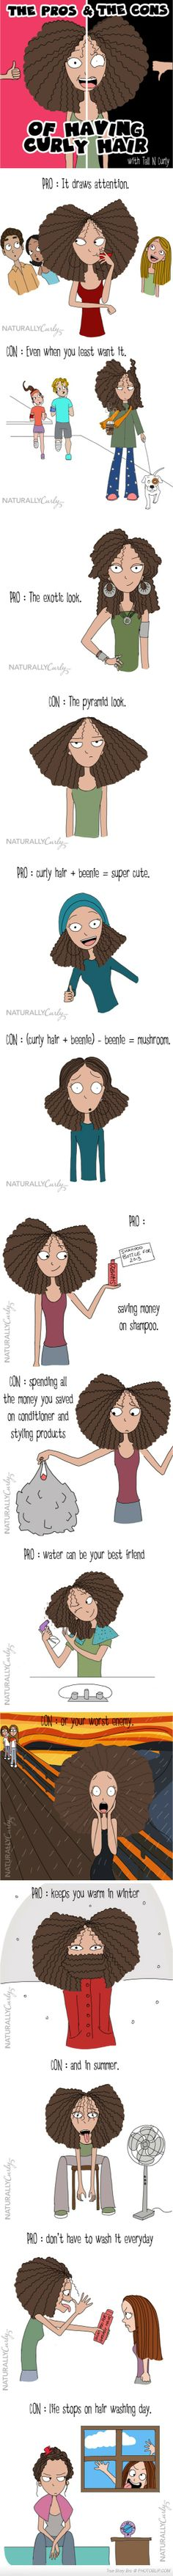 For All The Curly Hair Girls Like Me